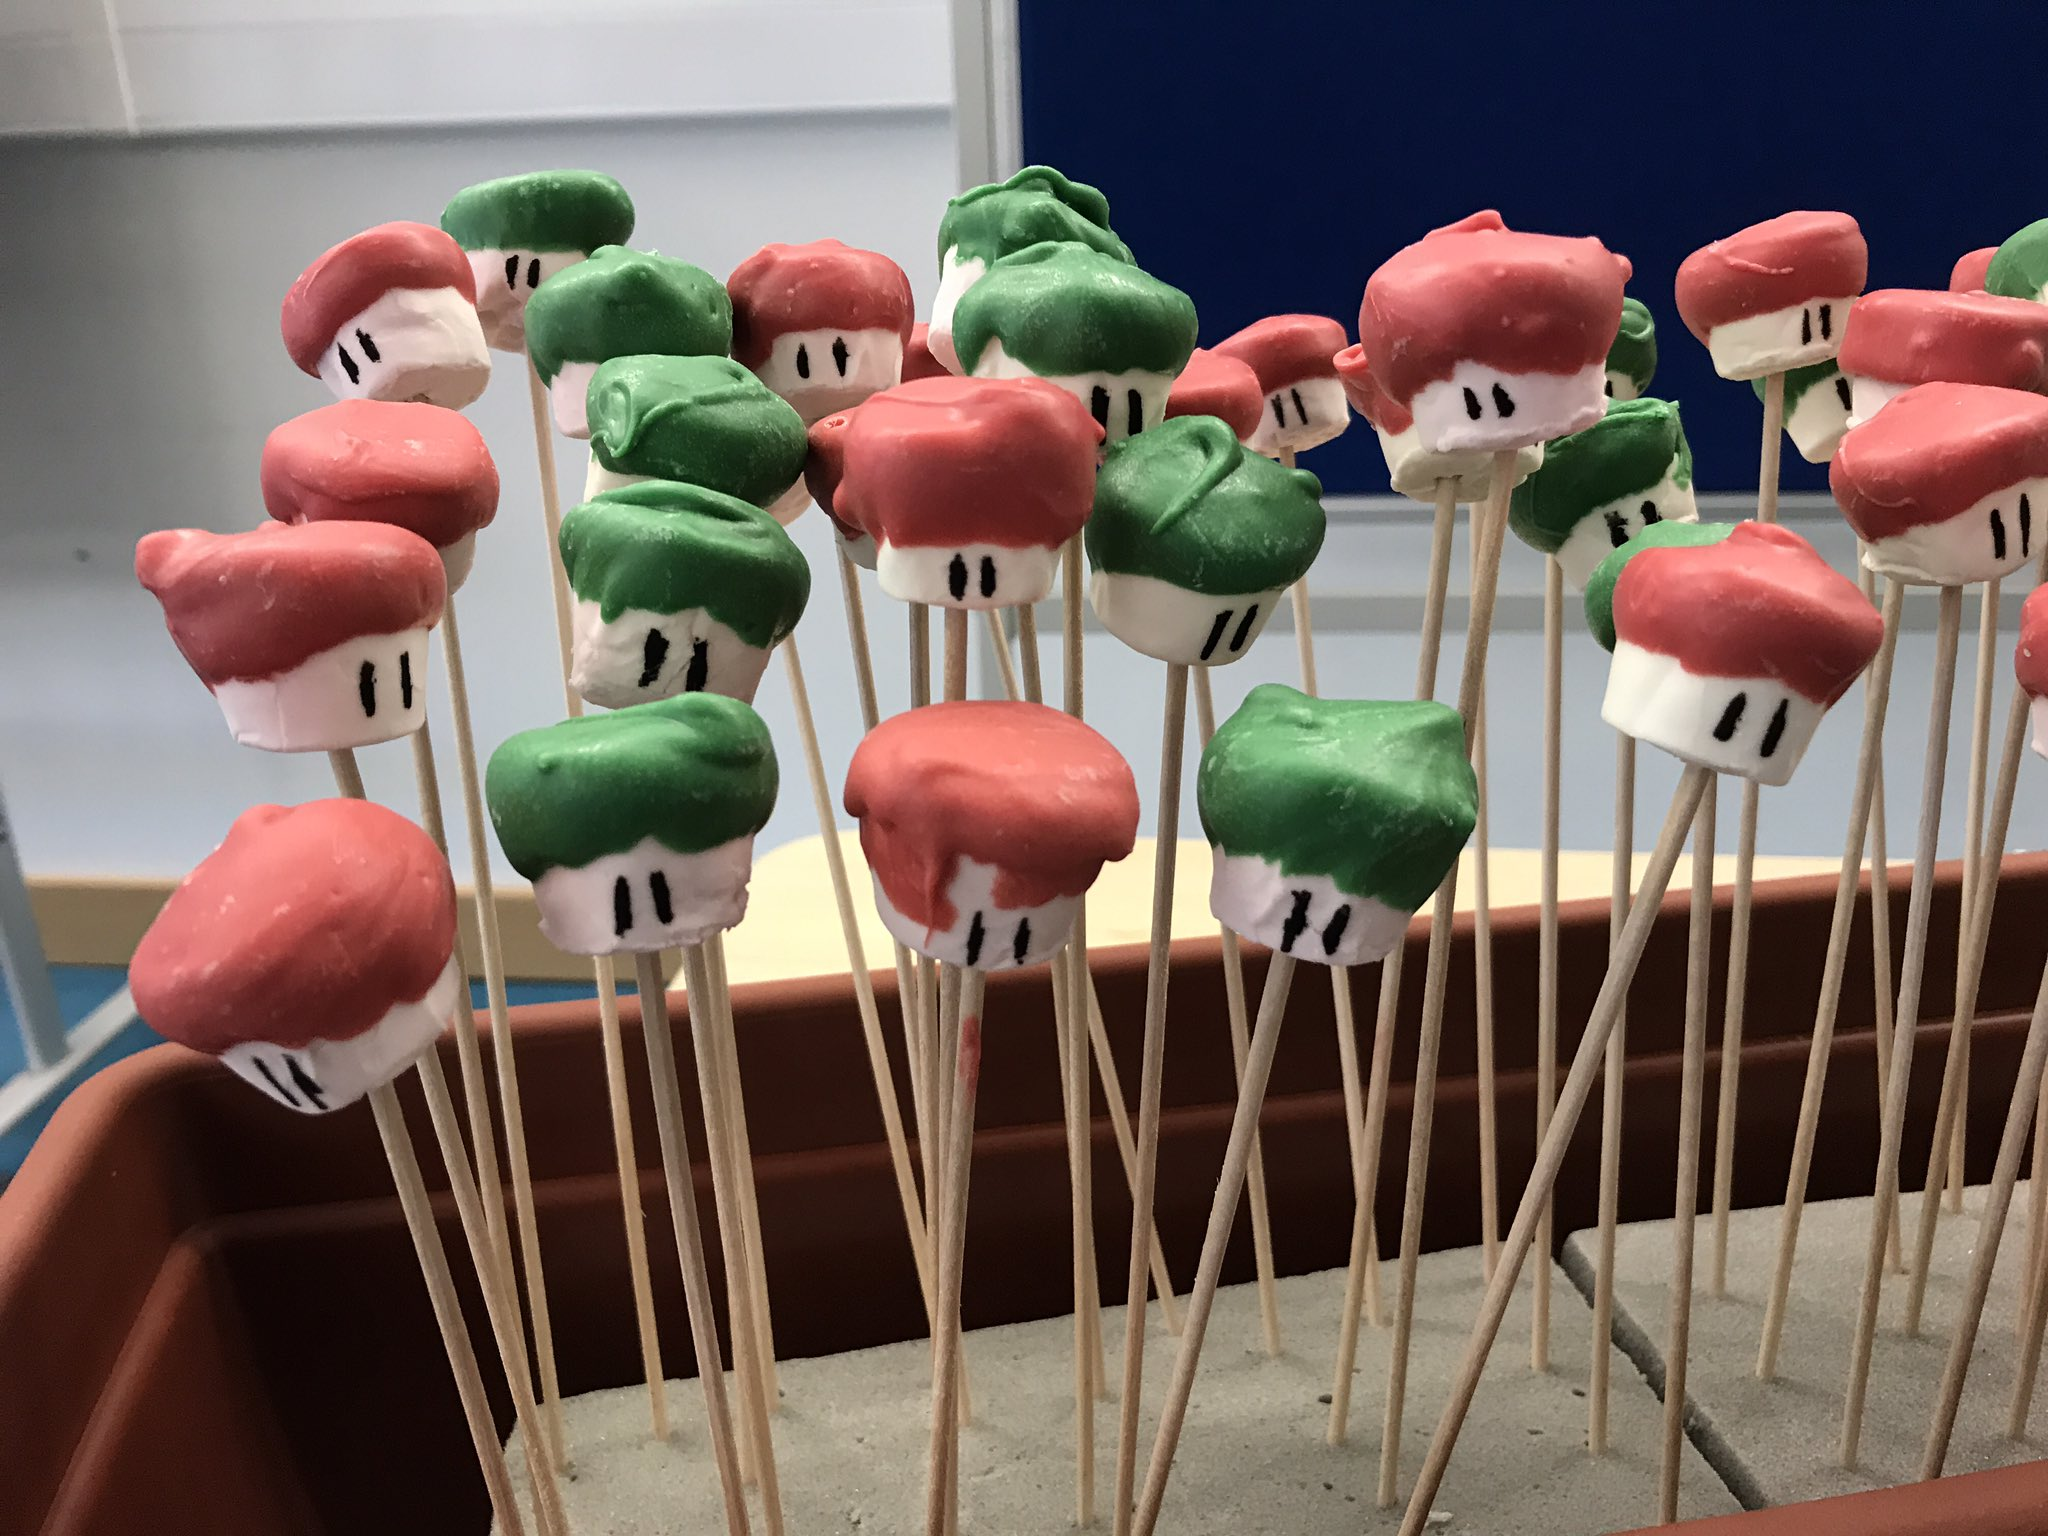 Have you seen the Mario marshmallow toads? #gamespk #AbertayGames20 #yum https://t.co/JJZwE2o7oX